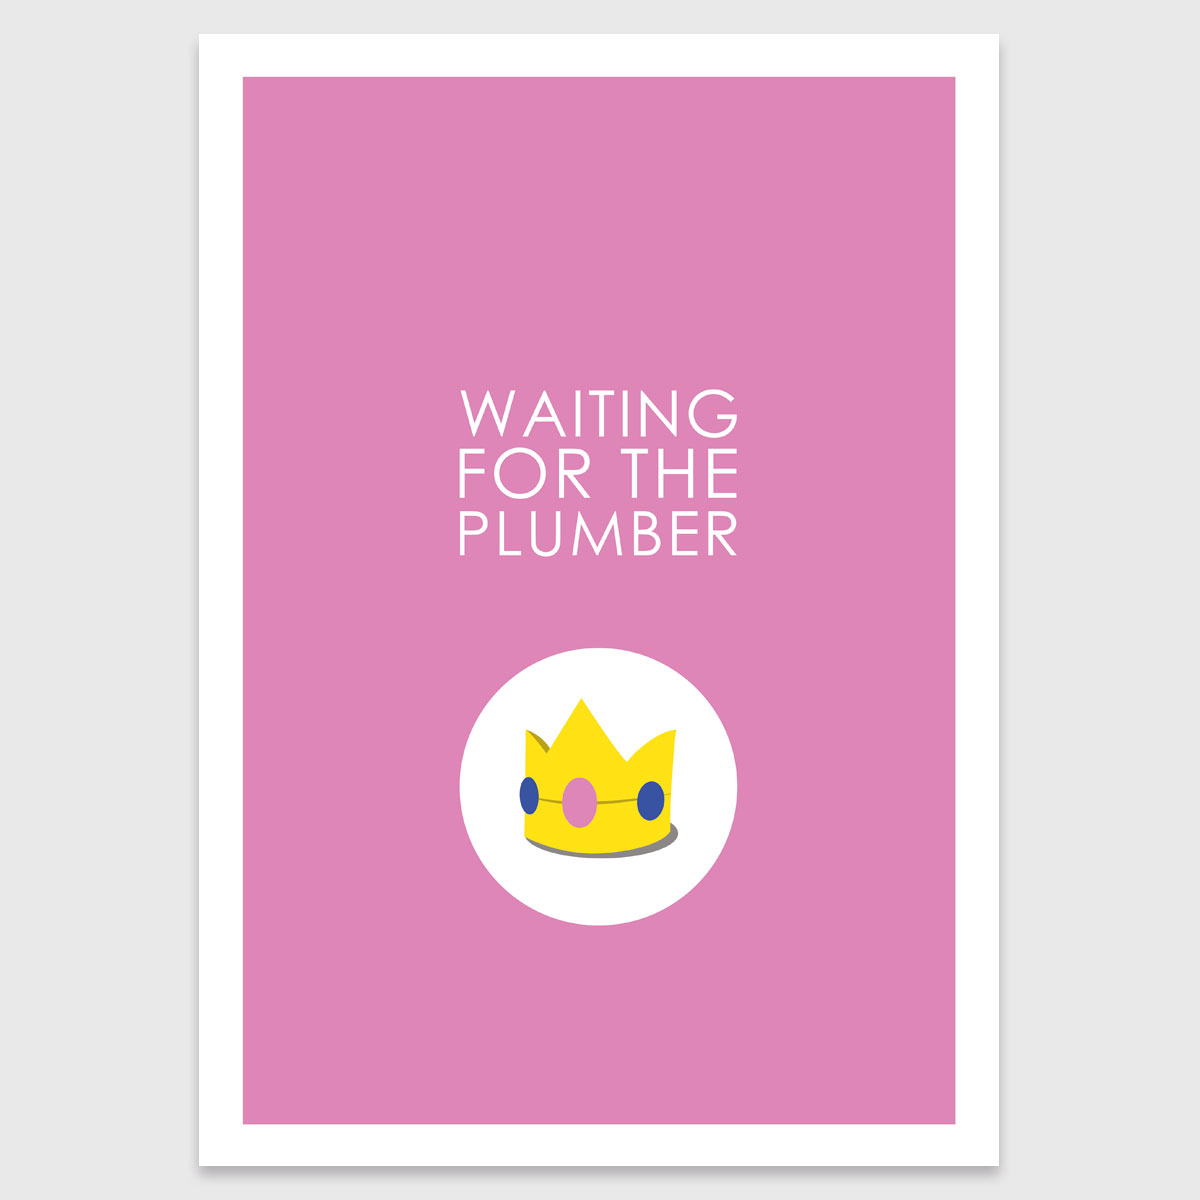 Alternative photo: Retro print: Waiting for the plumber